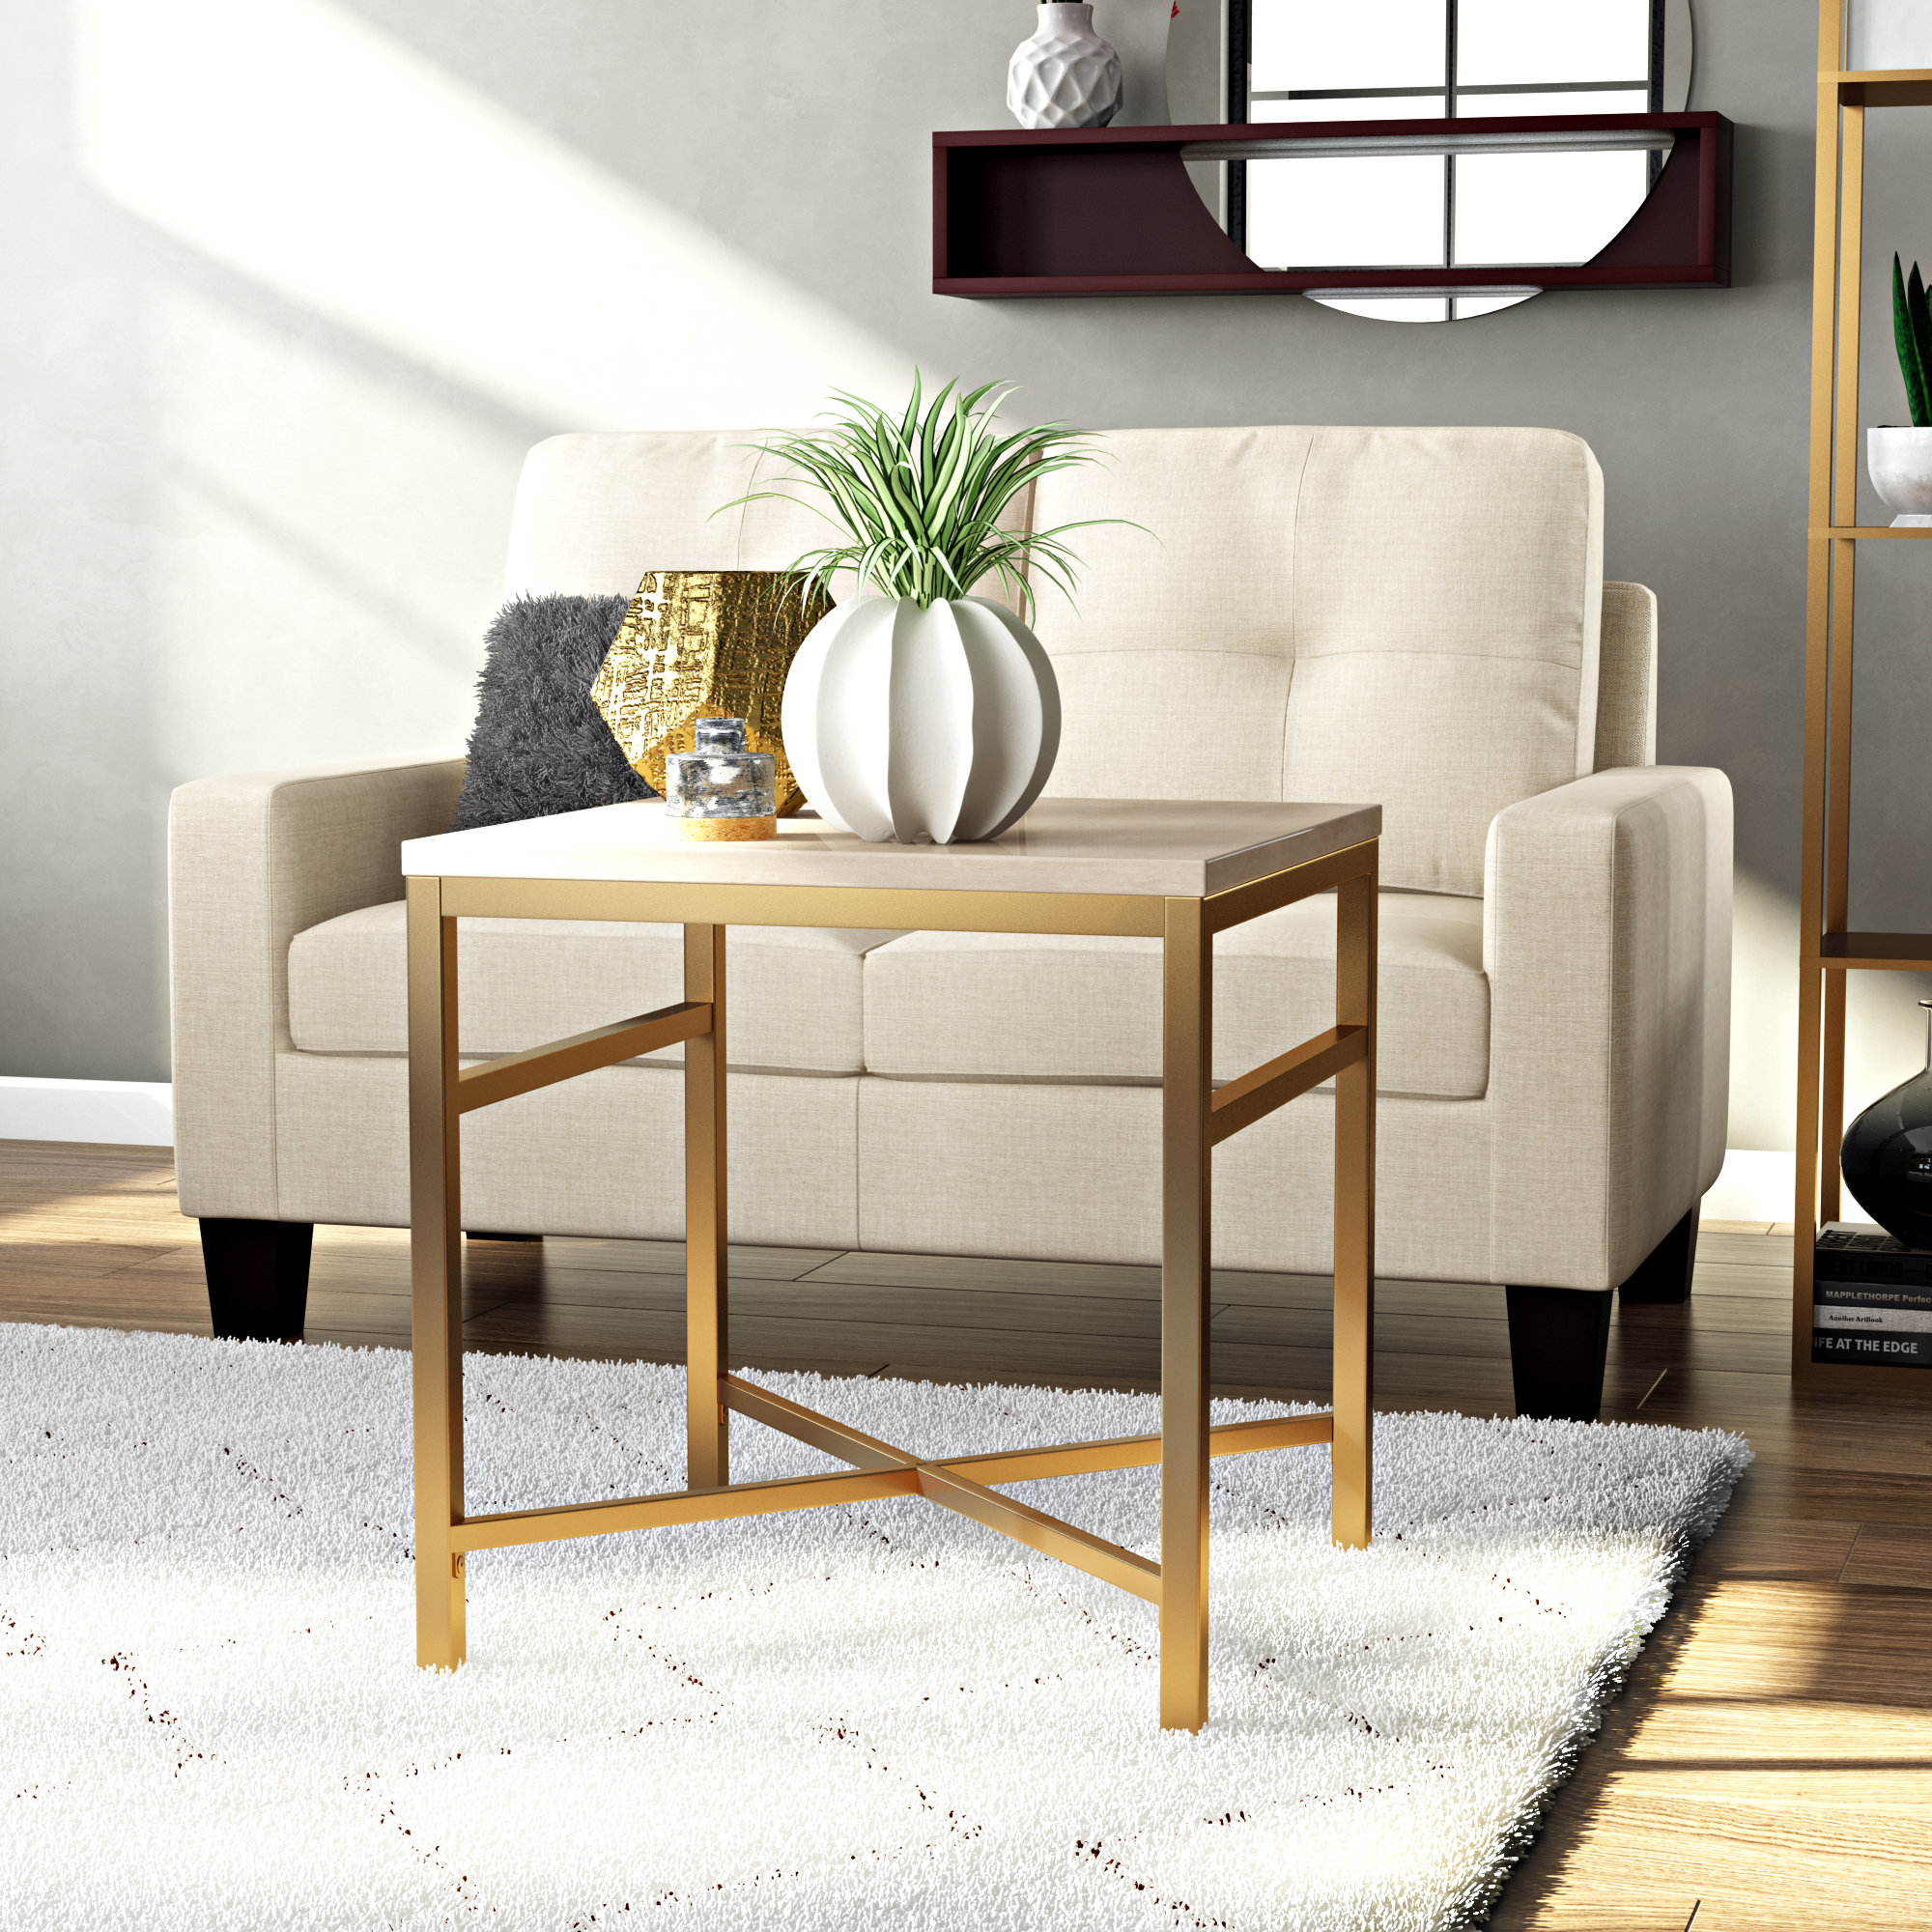 zipcode design stults faux stone end table travertine reviews avalon round accent pier imports furniture green lamps contemporary stump side designs with drawers asian porcelain